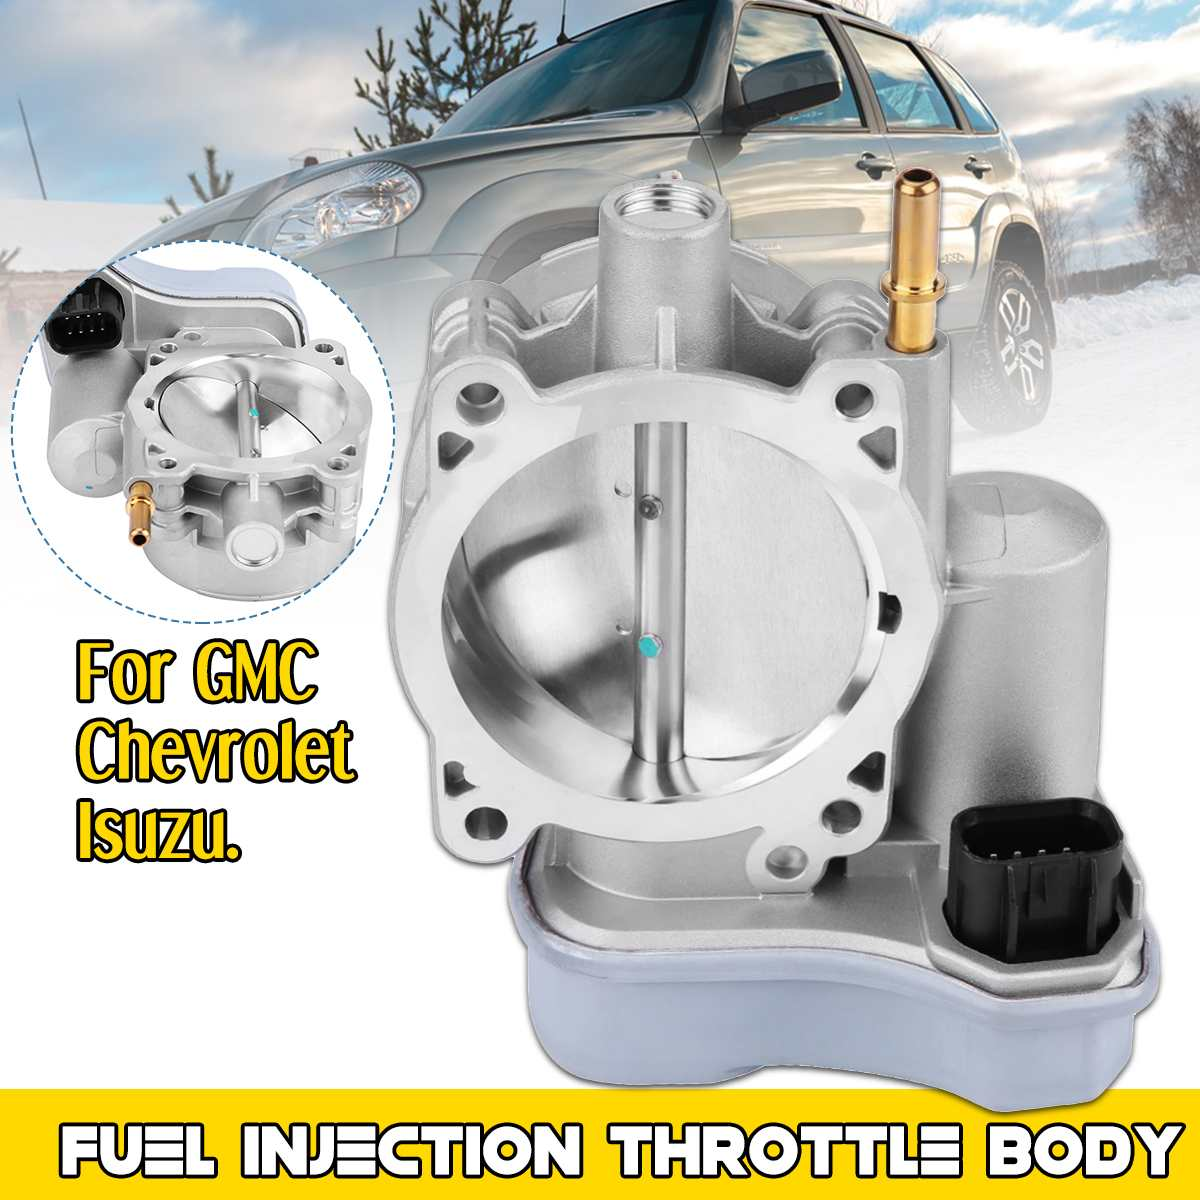 12568580 Fuel Injection Throttle Body Assembly For GMC/Buick/Chevrolet/Isuzu Car Auto Replacement Parts Air Intake System